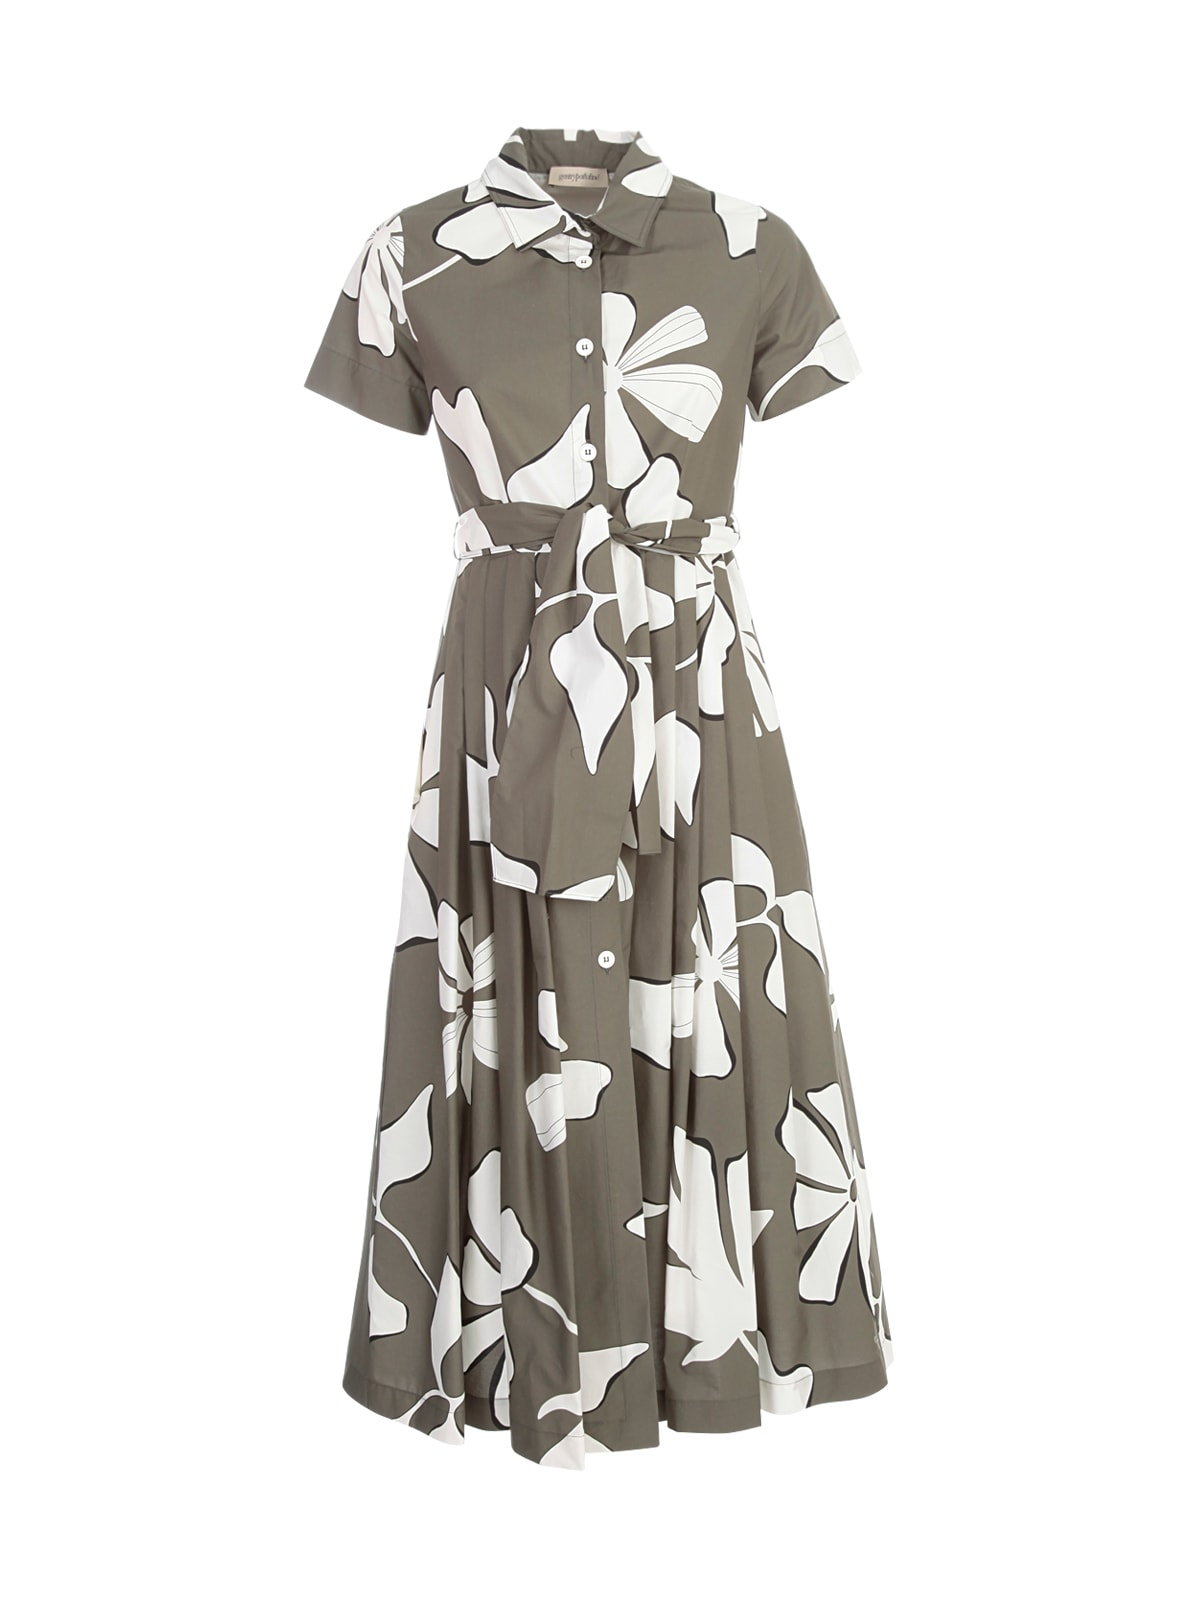 Buy Chemisier S/s Dress W/flowers Printing online, shop Gentry with free shipping